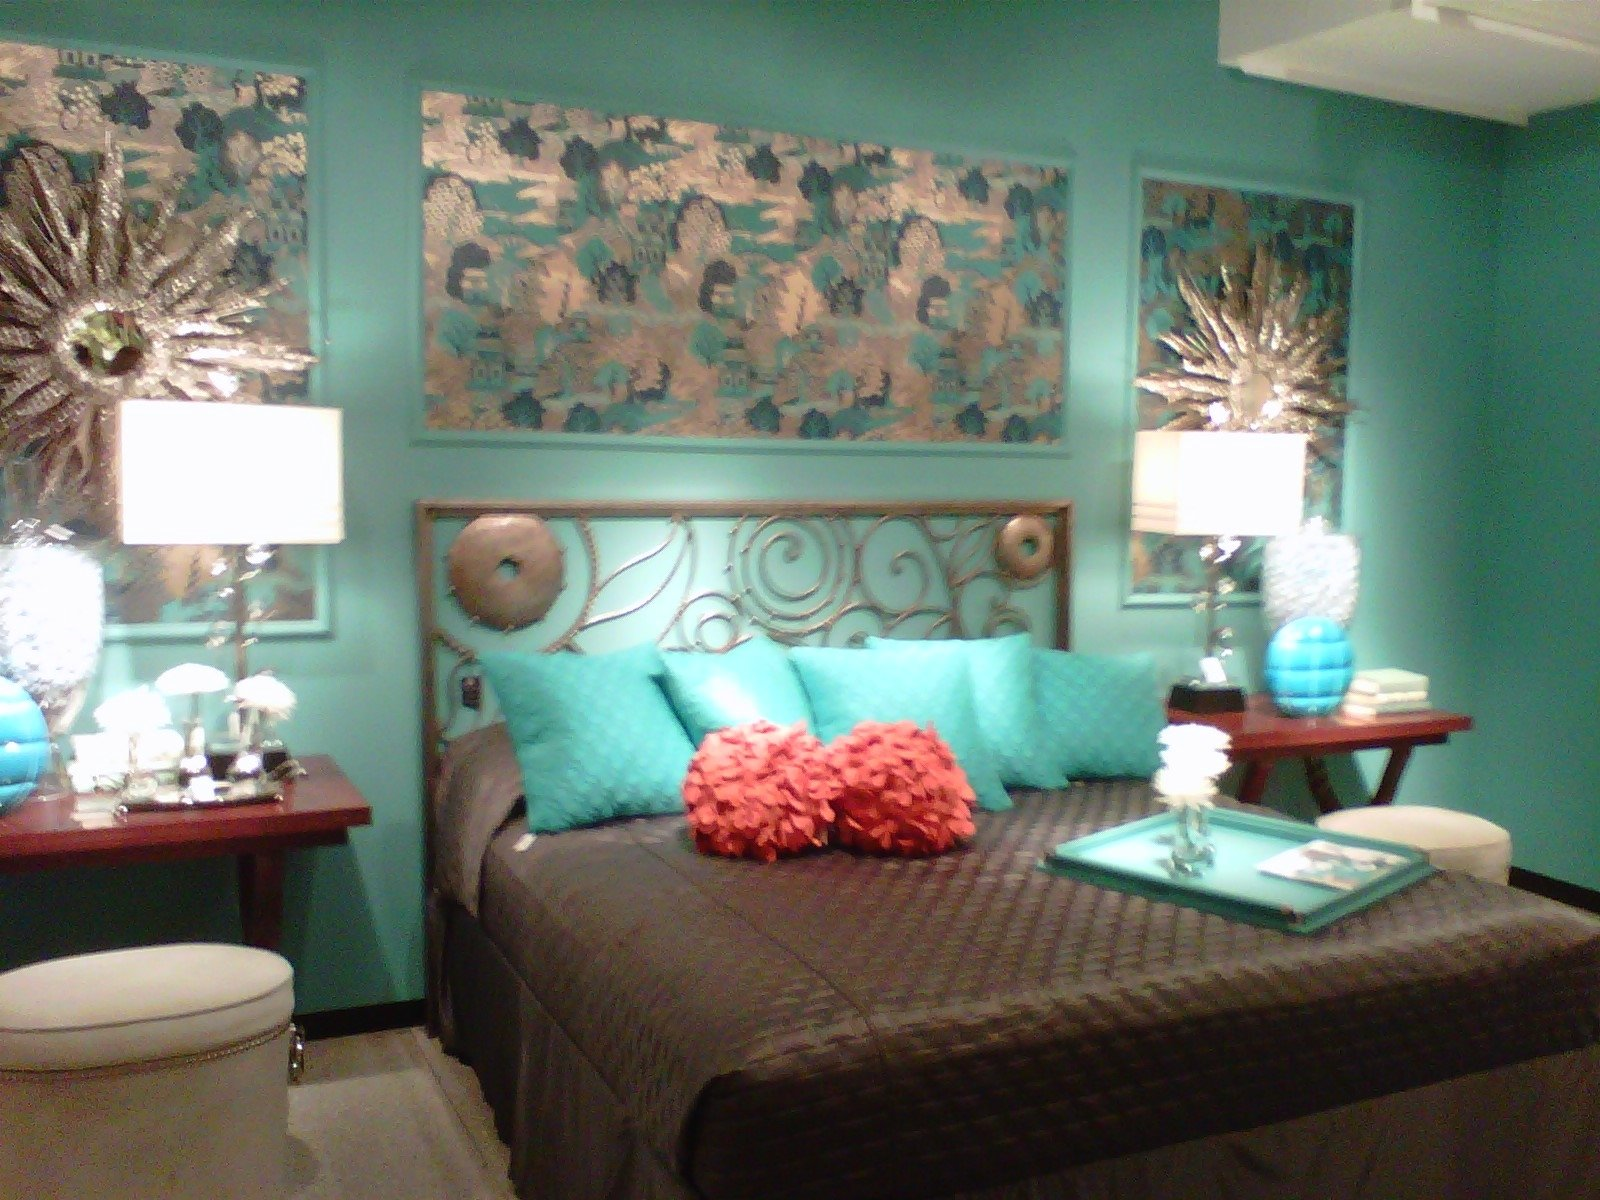 10 Most Popular Teal And Brown Bedroom Ideas green and turquoise bedrooms maxwell house of design favorite 2021